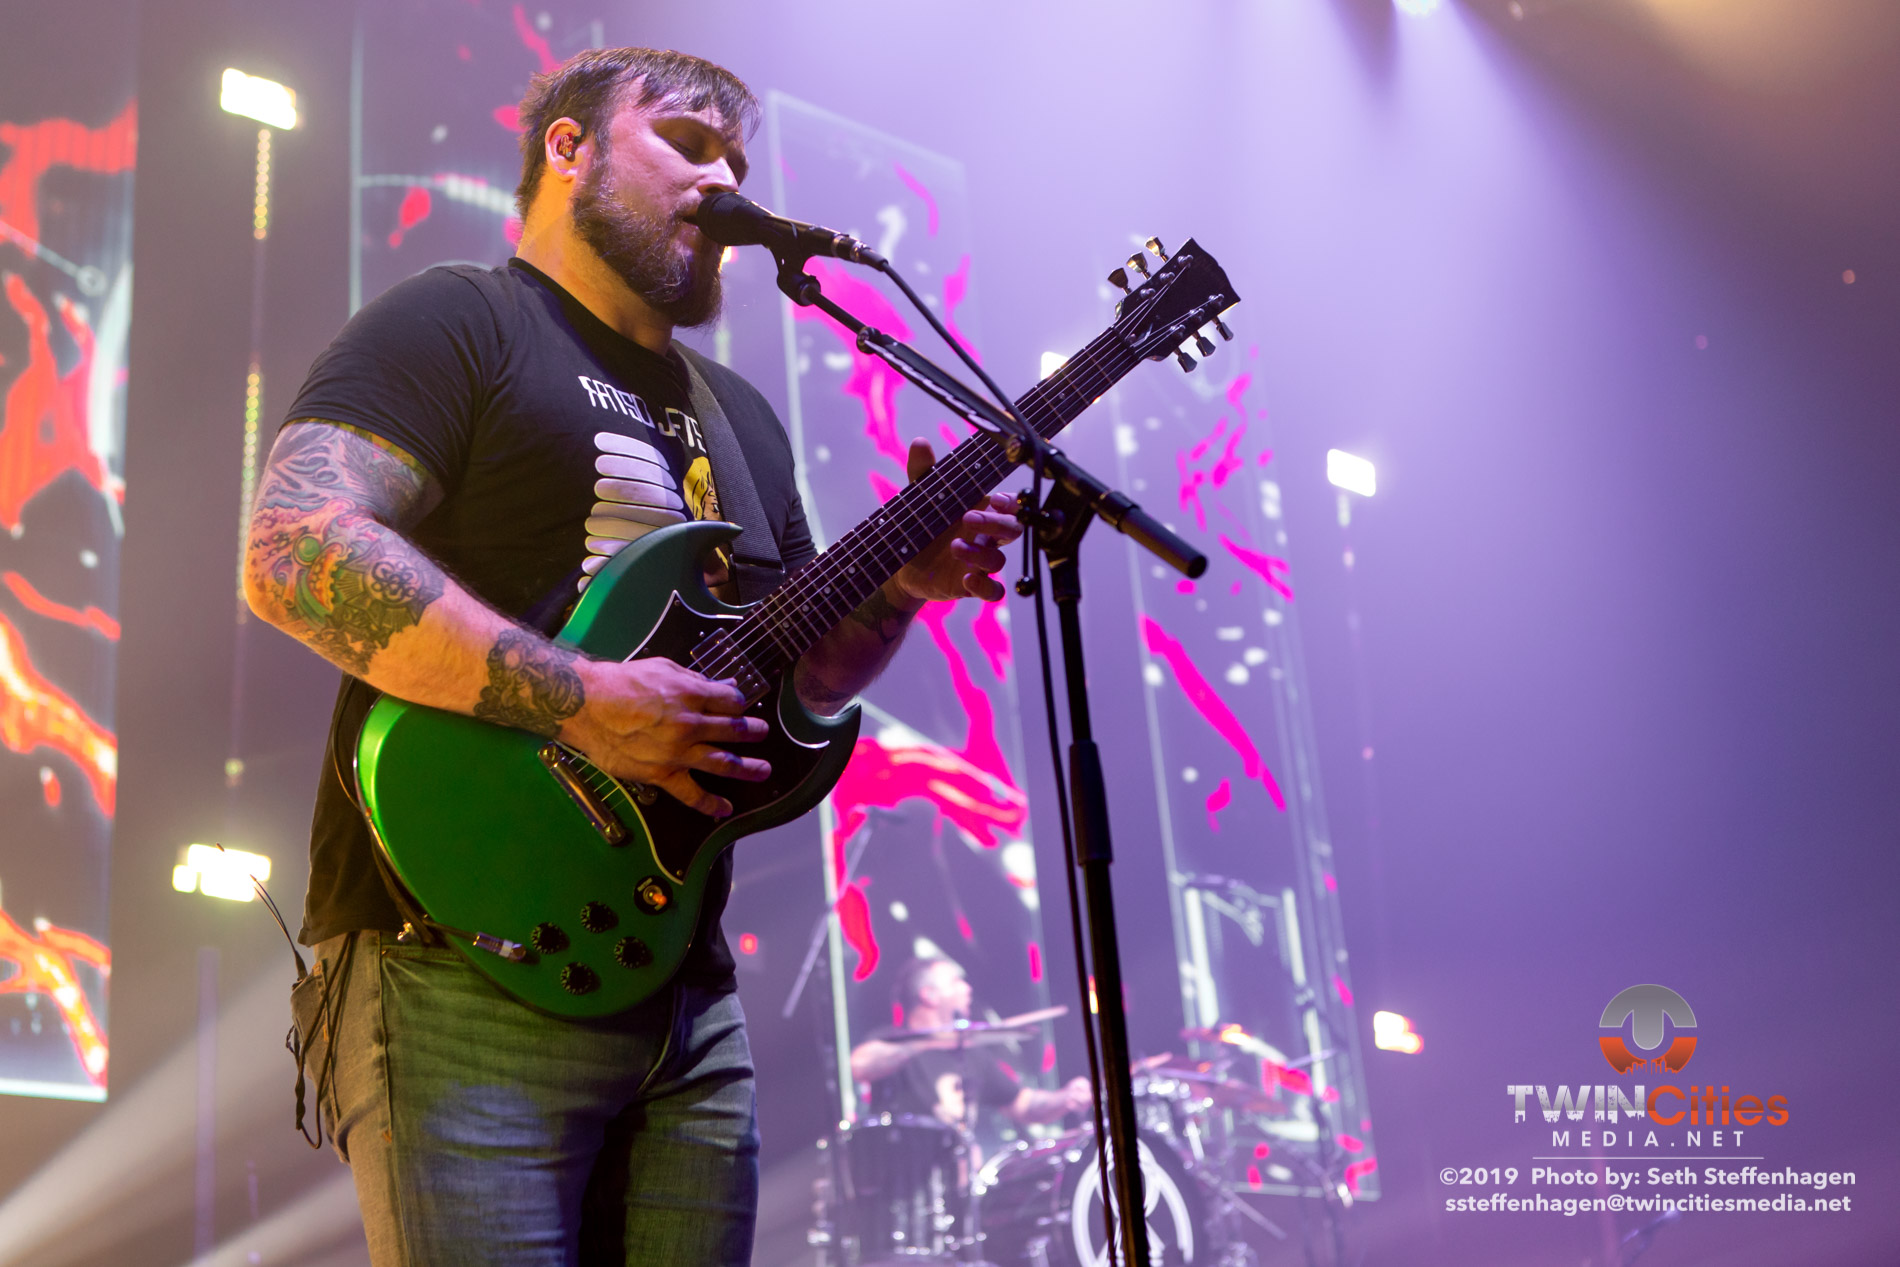 June 15, 2019 - Minneapolis, Minnesota, United States - Coheed & Cambria live in concert at The Armory along with Mastodon and Every Time I Die.(Photo by Seth Steffenhagen/Steffenhagen Photography)